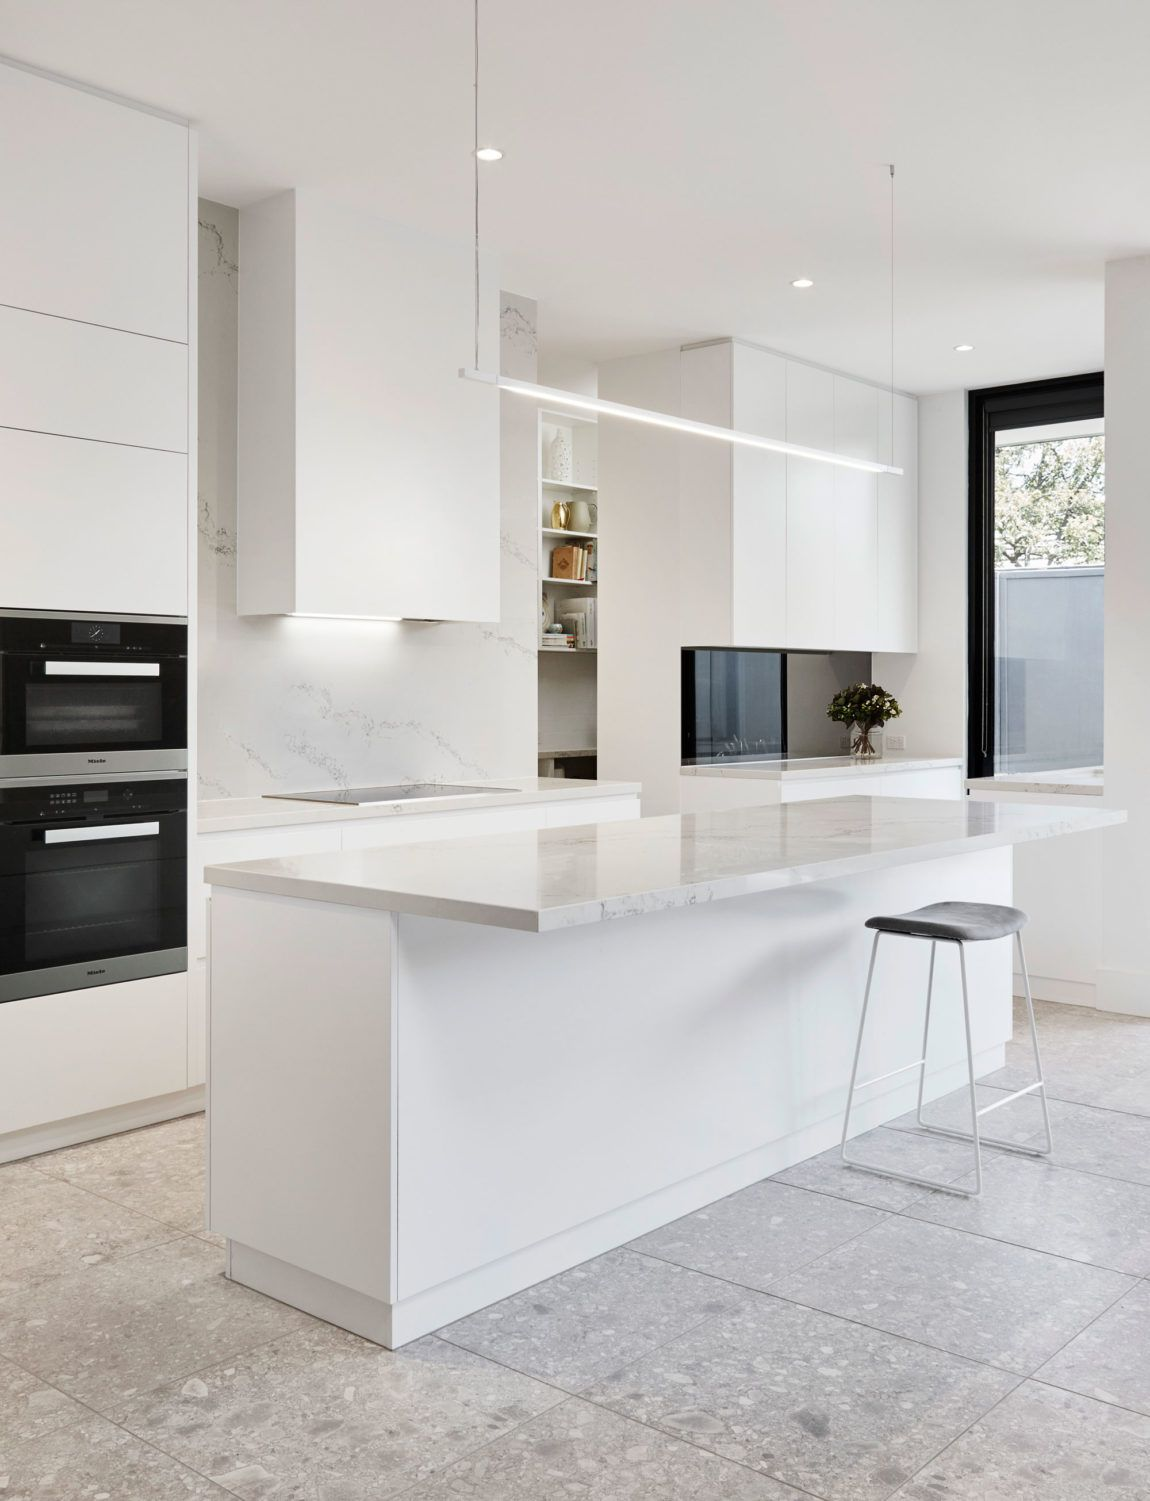 Simple and Delicate Renovation of White Spaces